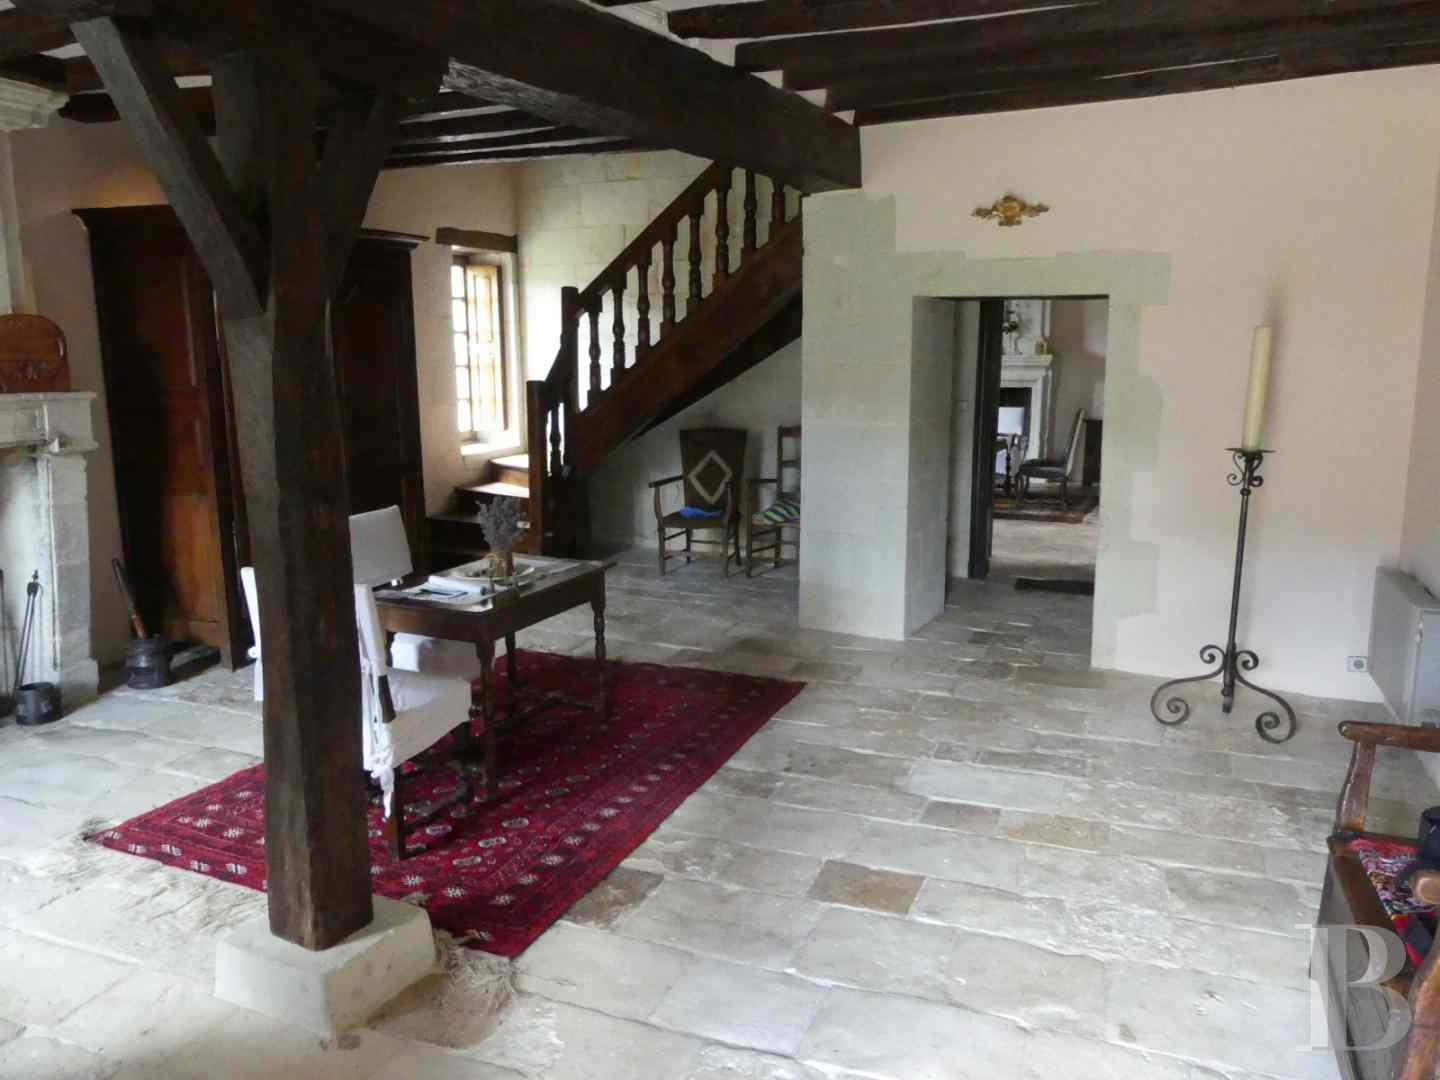 property for sale France poitou charentes residences historic - 6 zoom